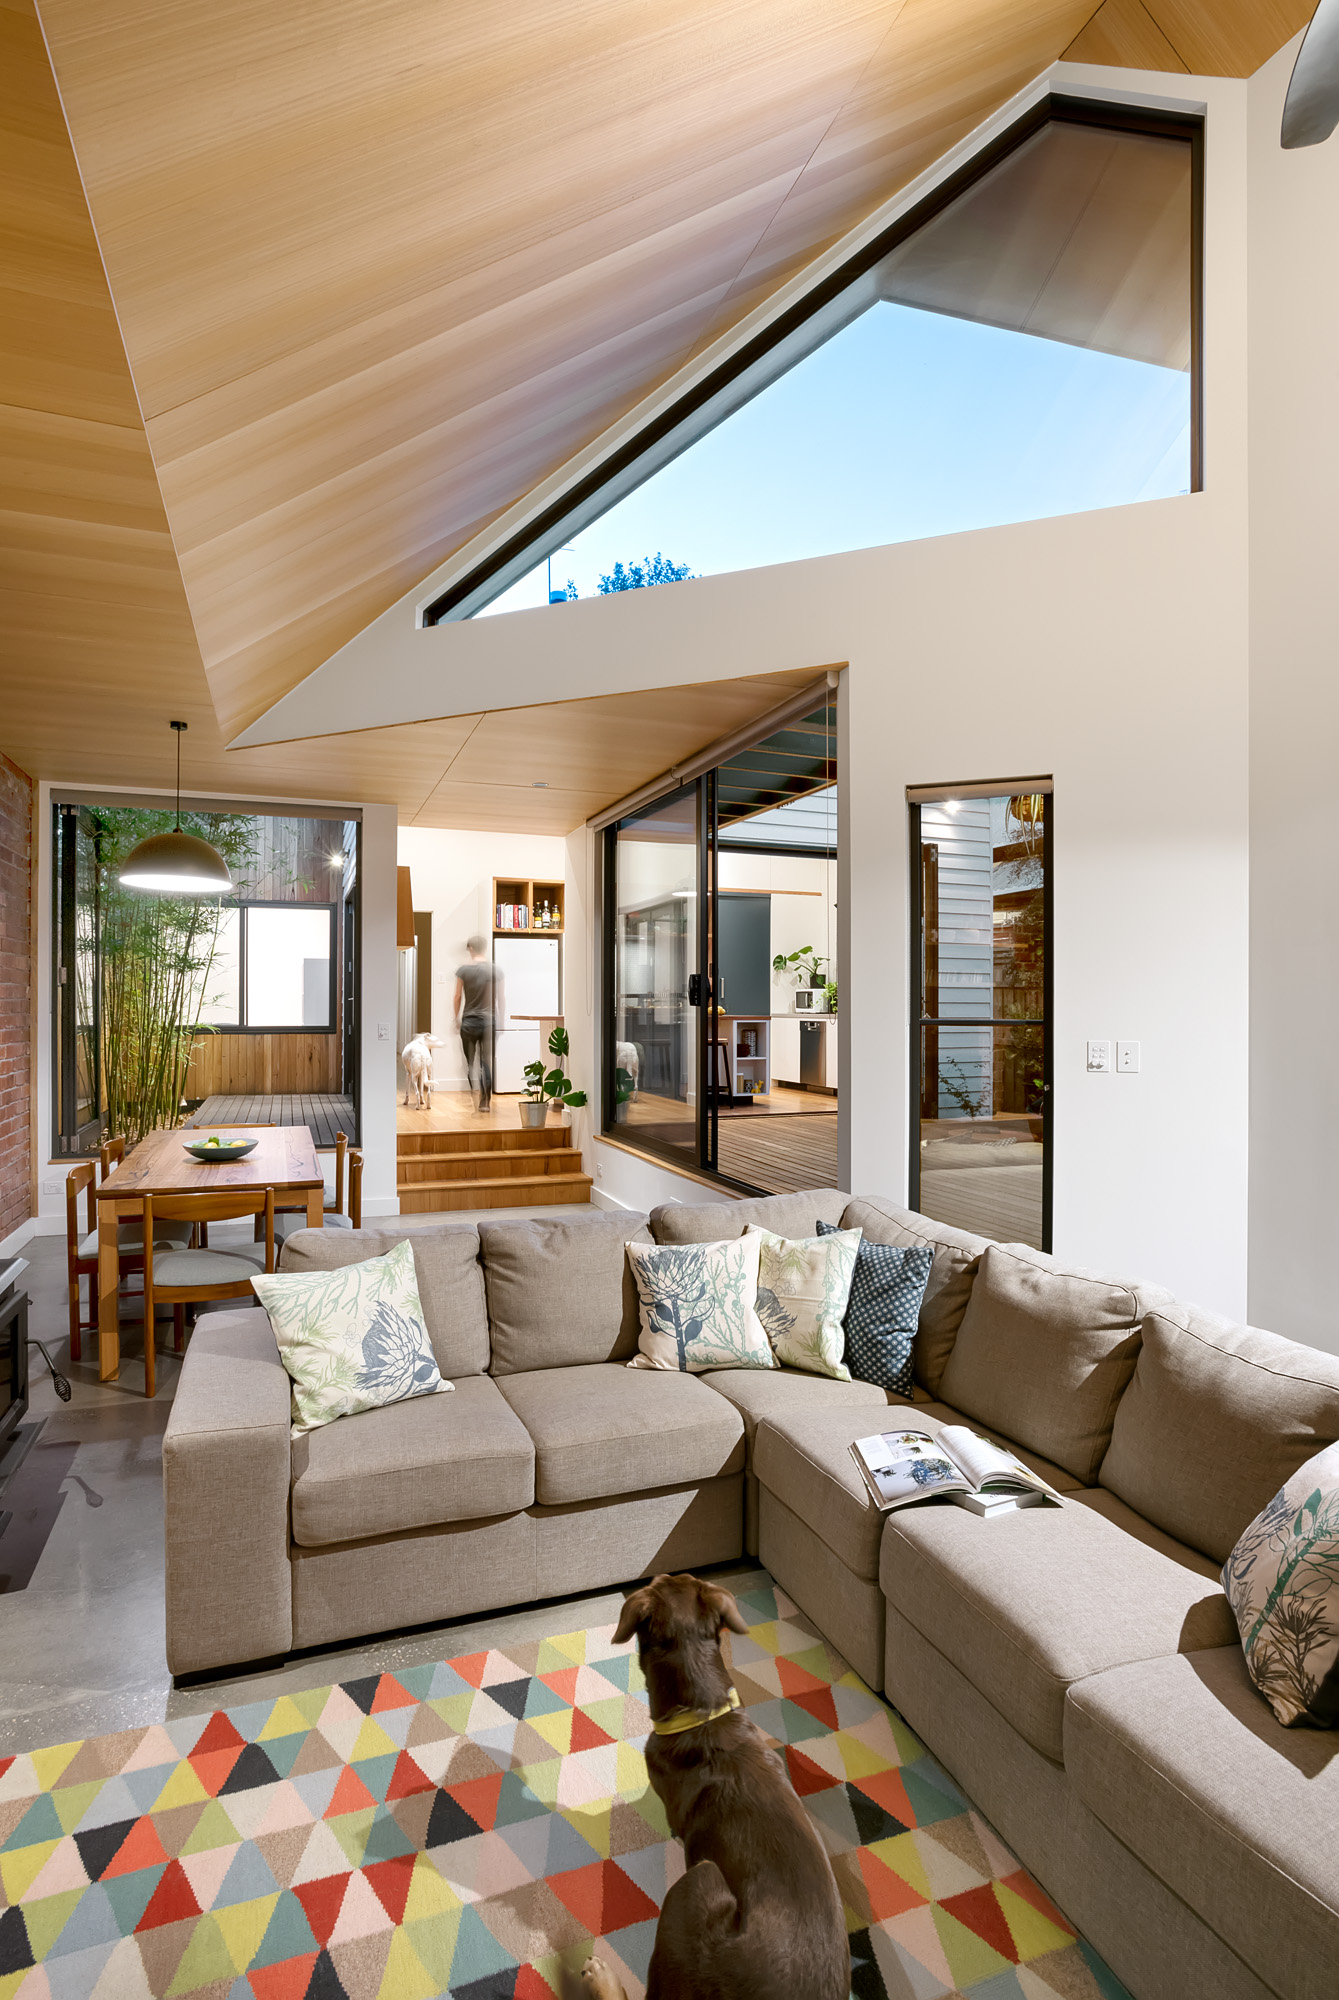 green sheep collective sustainable architect melbourne north facing windows split level thermal mass.jpg